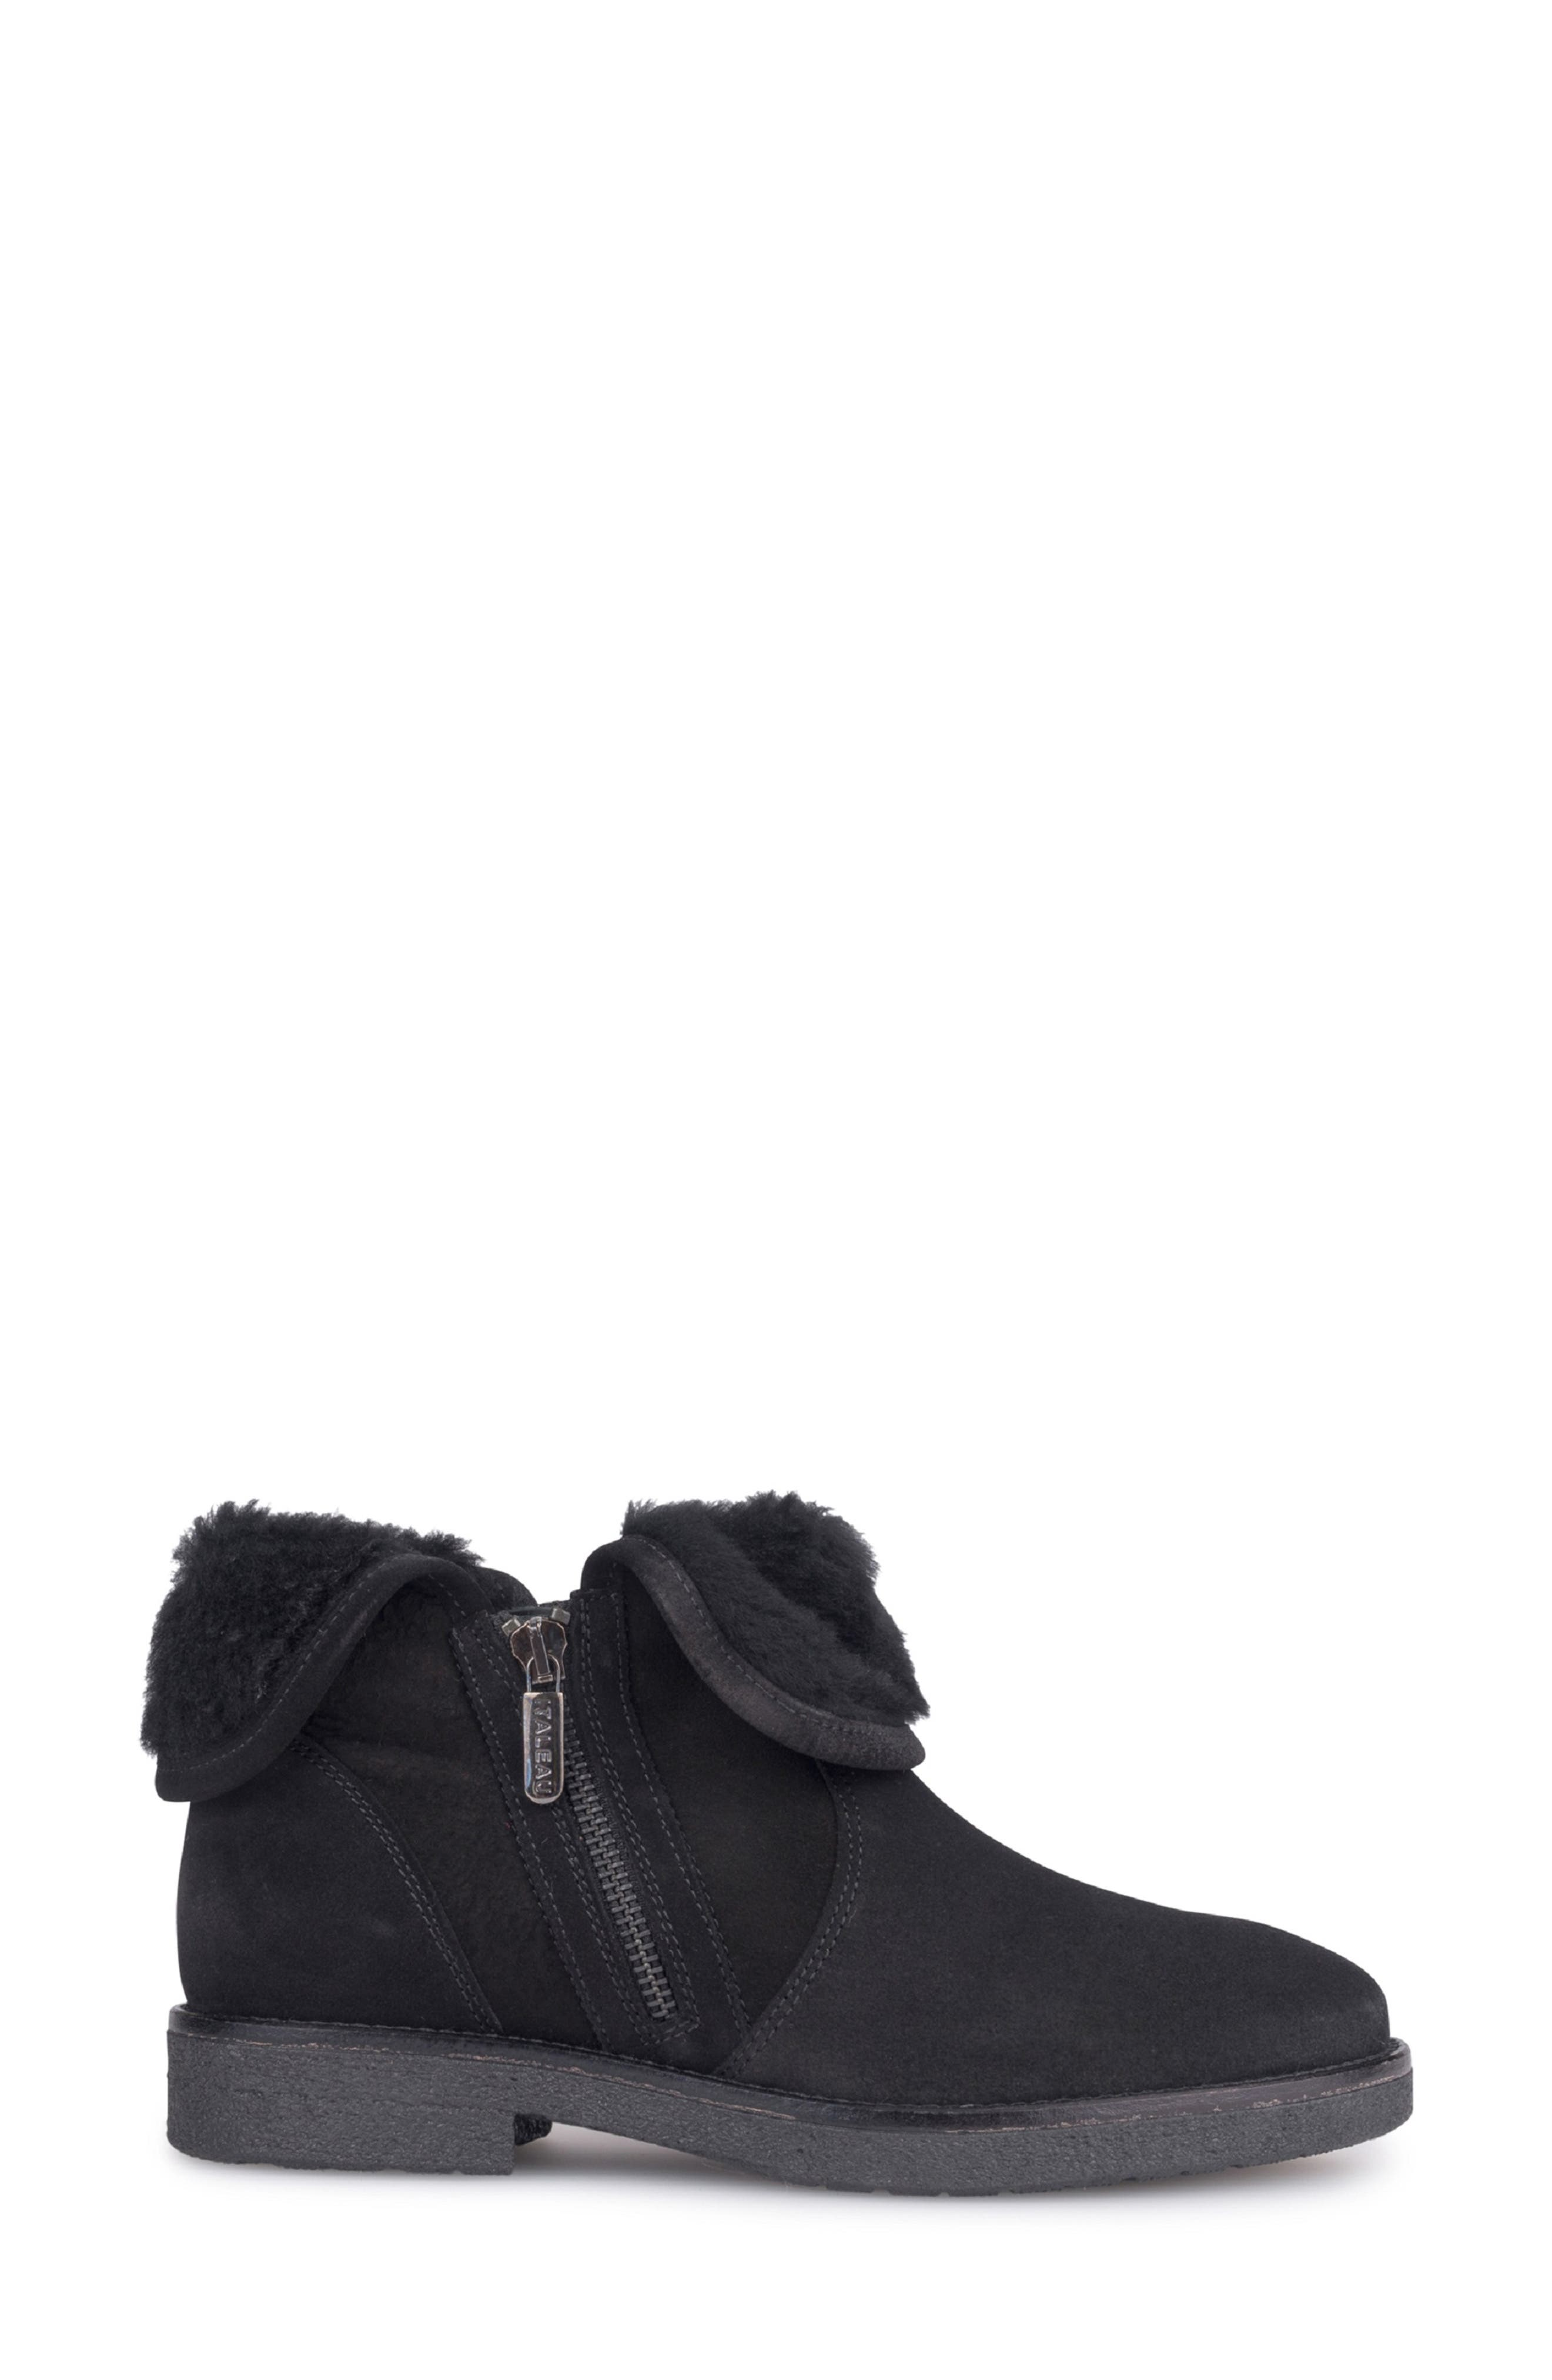 Rosie Genuine Shearling Lined Bootie,                             Alternate thumbnail 3, color,                             NERO